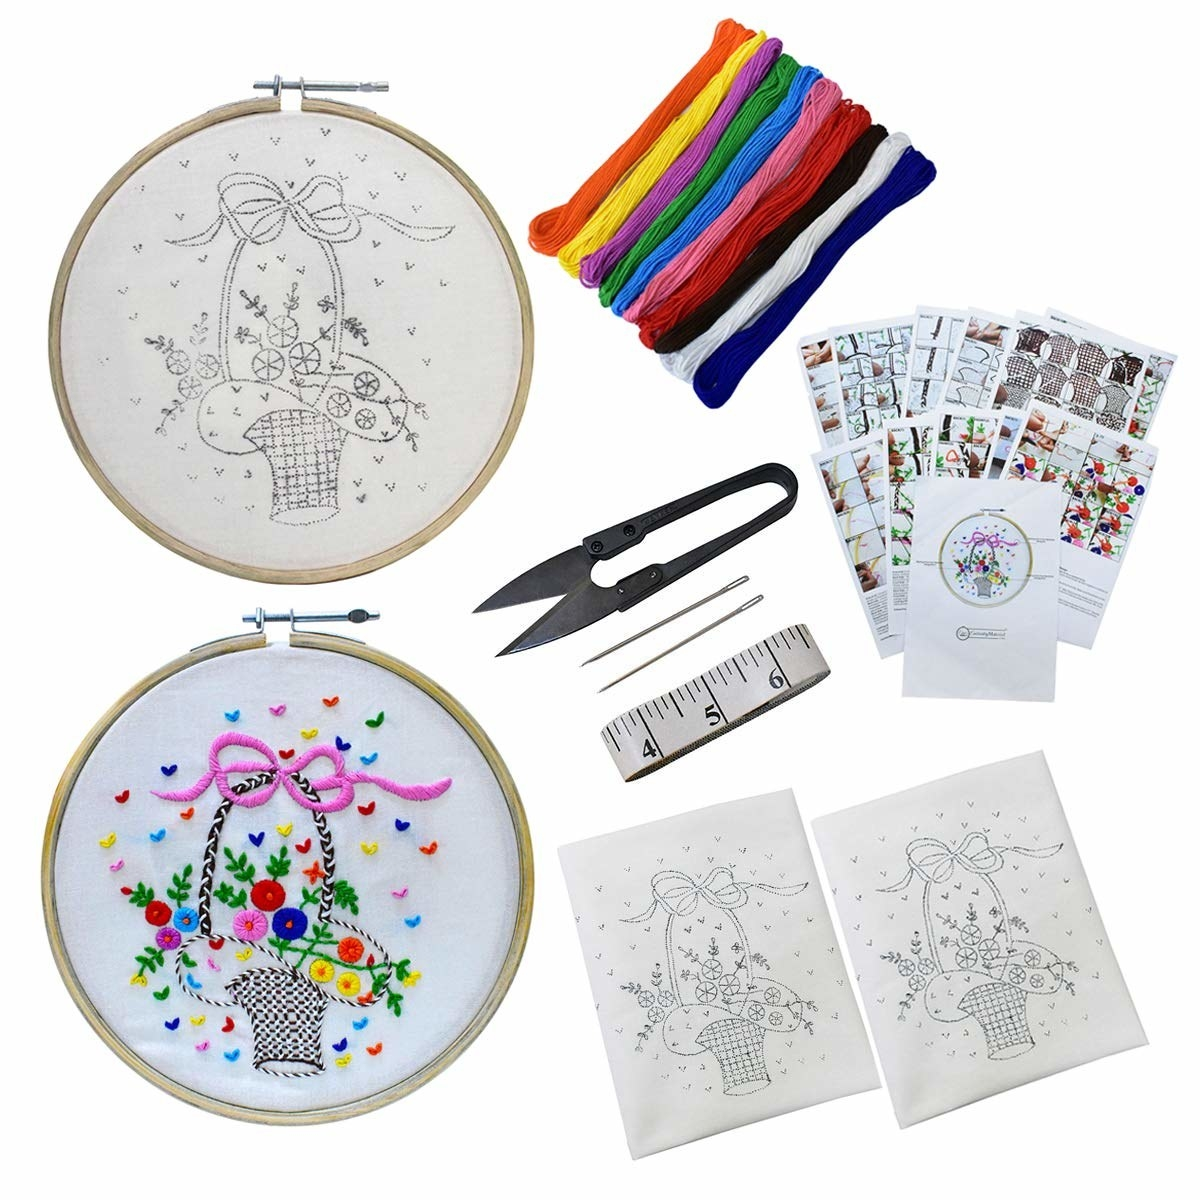 An embroidery kit